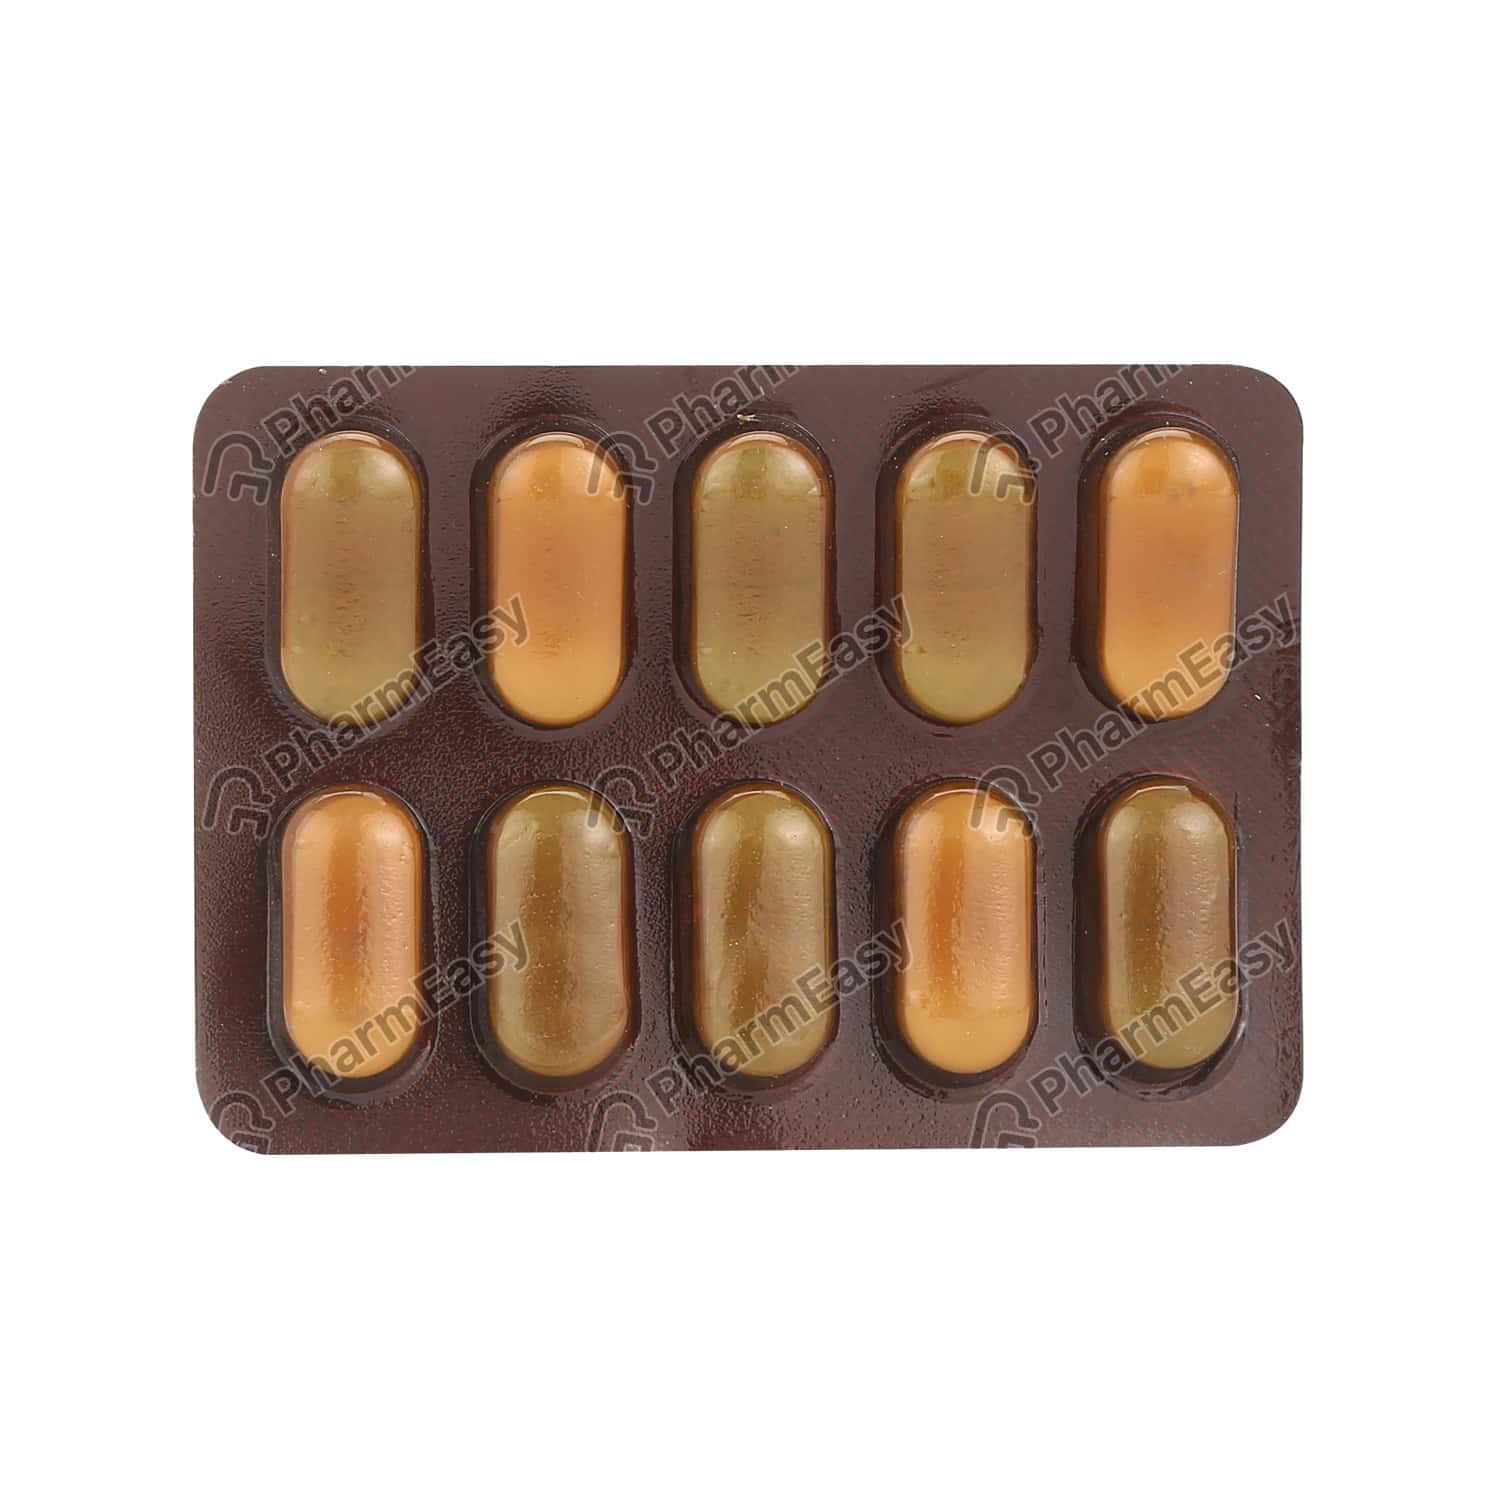 Vogs Gm 1mg Tablet